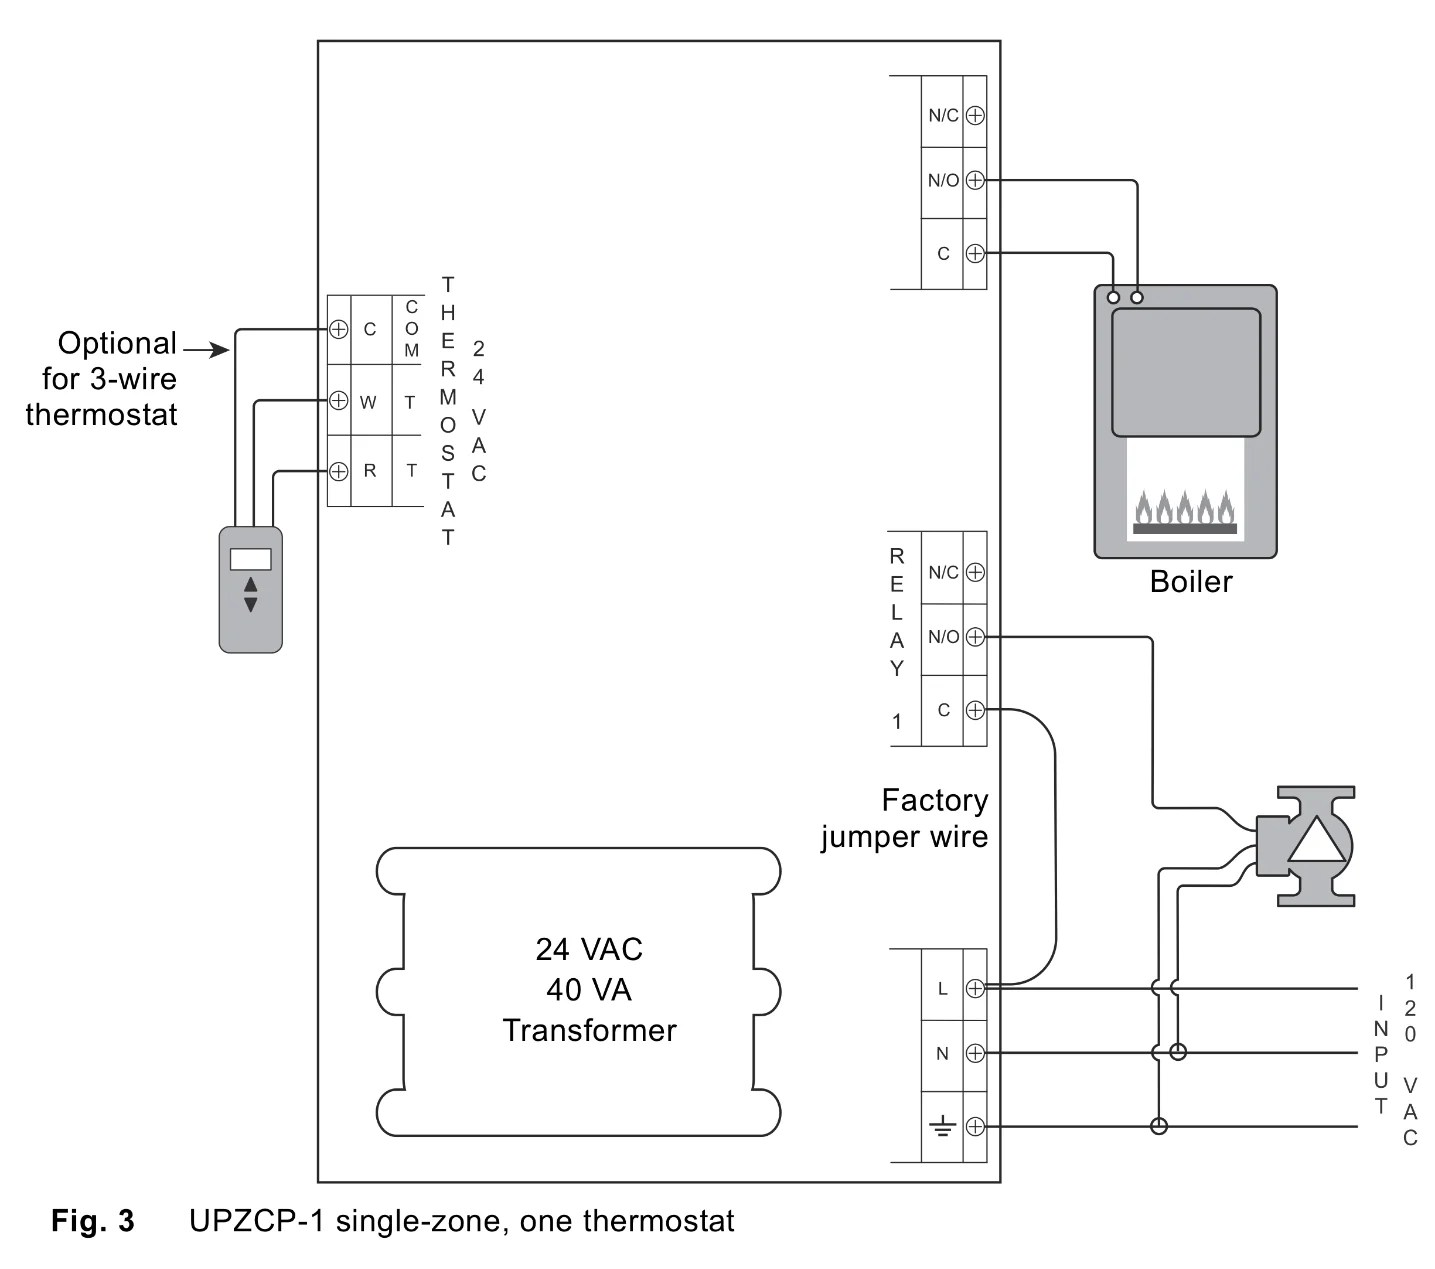 hight resolution of also included here is the wiring schematic for the relay i m particularly concerned